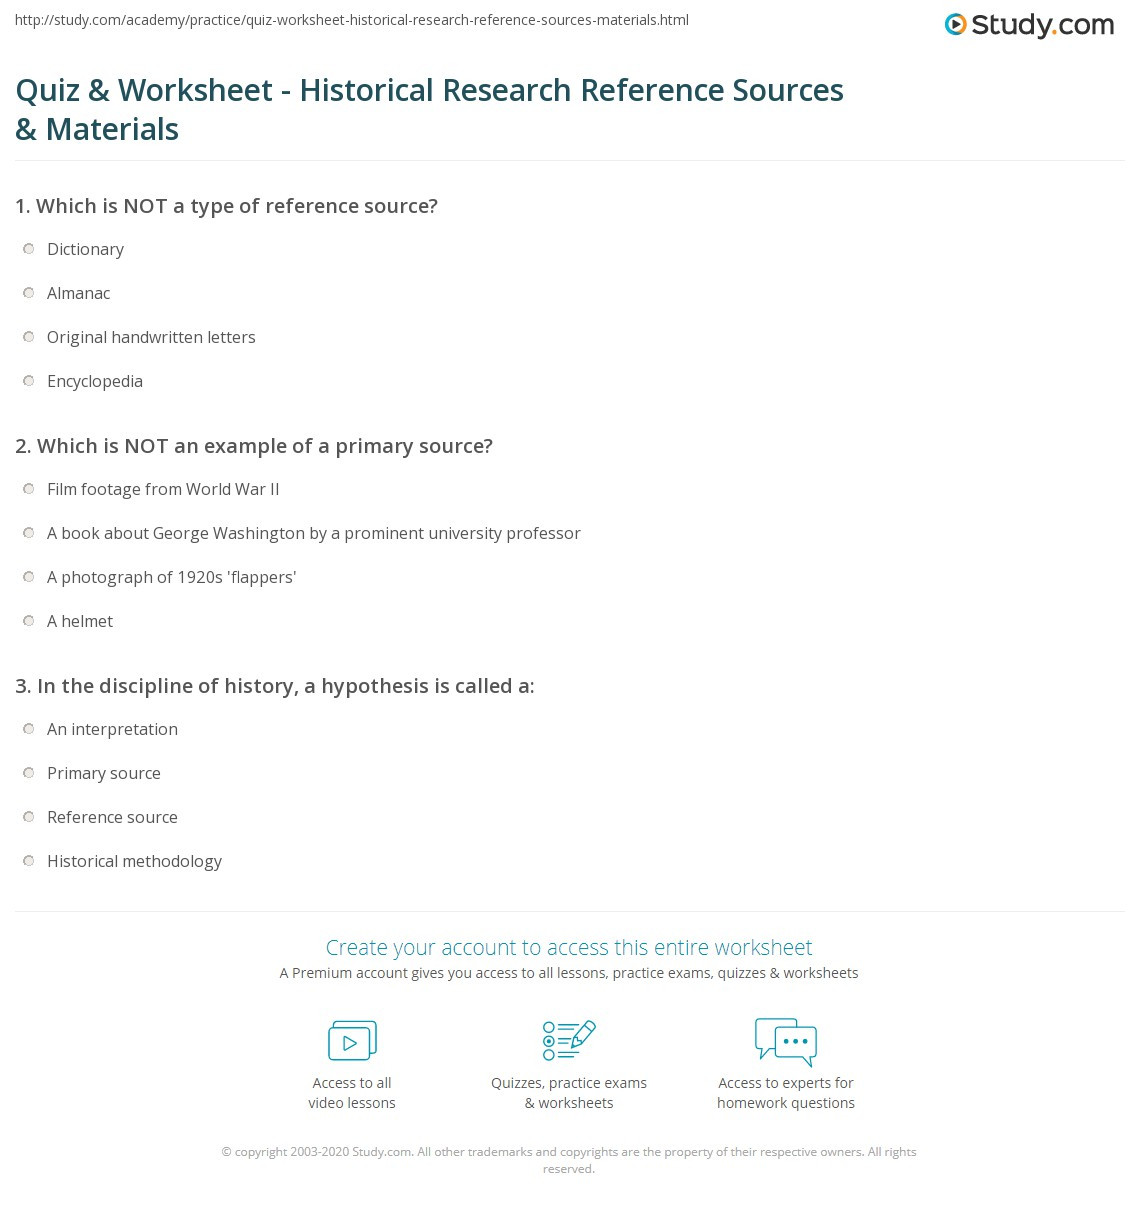 Citing sources Worksheet 5th Grade Reference sources Worksheet